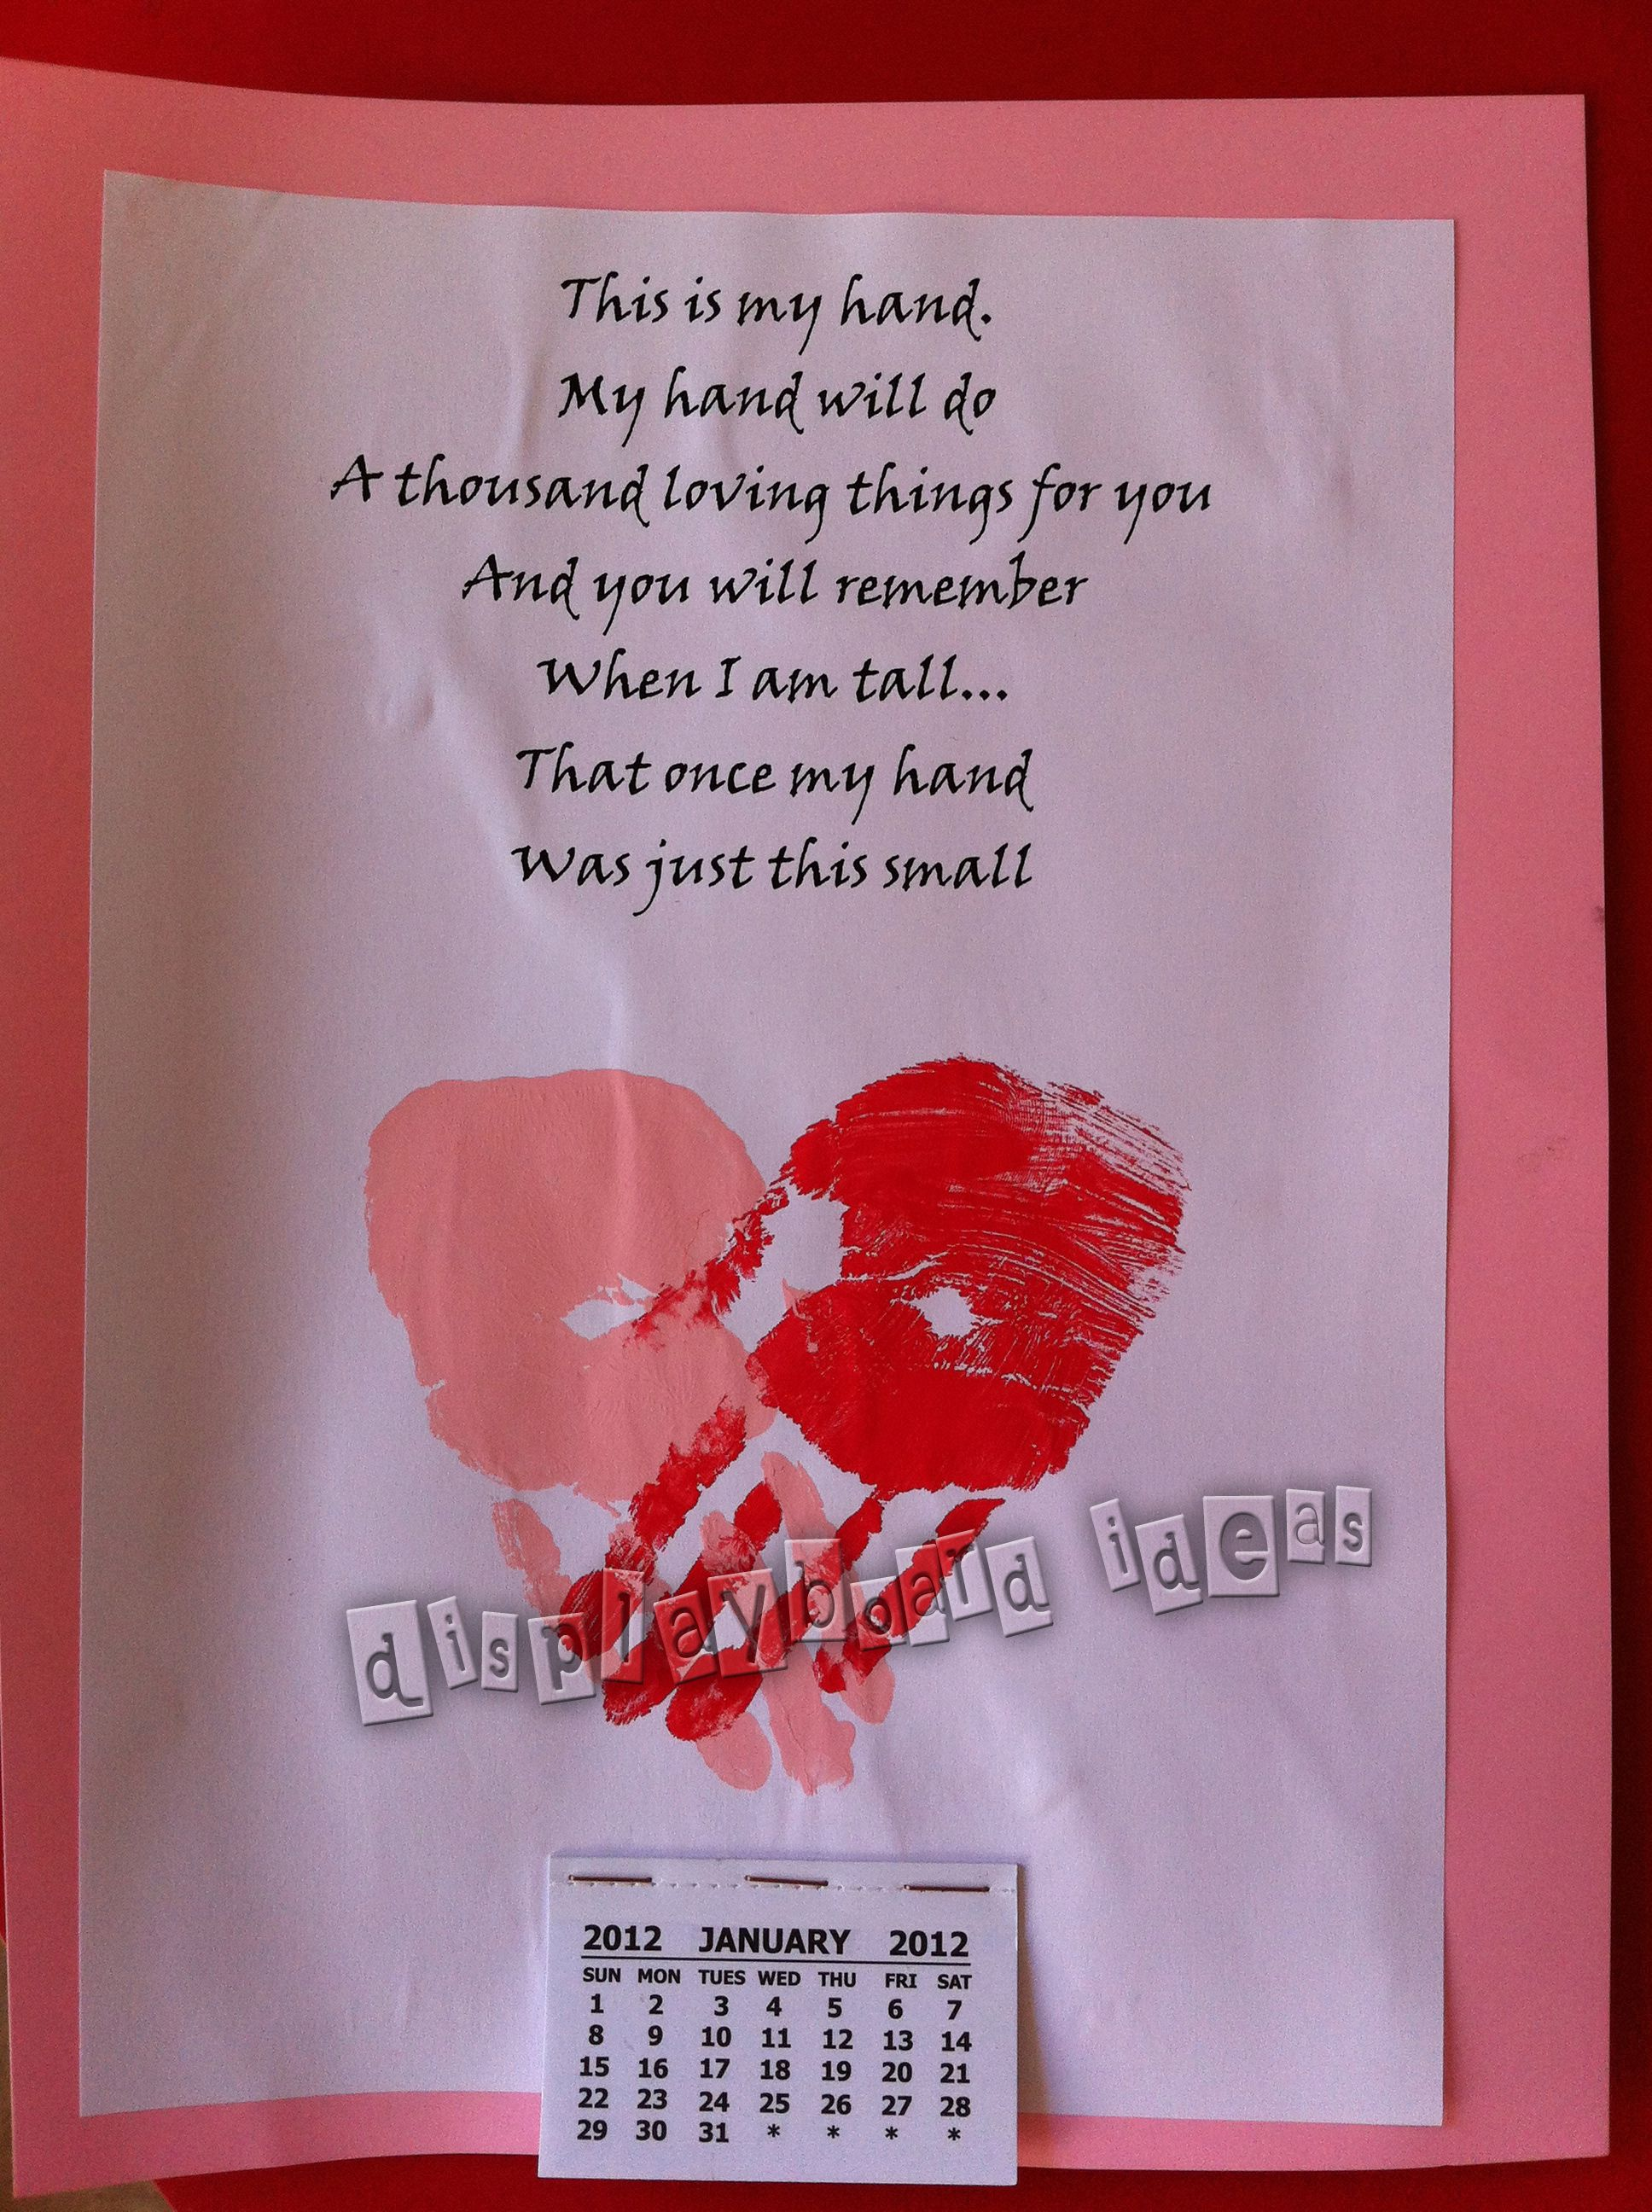 Uncategorized Valentines Poem For Kids valentine poems for preschoolers add a calendar on the bottom christian kids uk and quick valentines gift fot